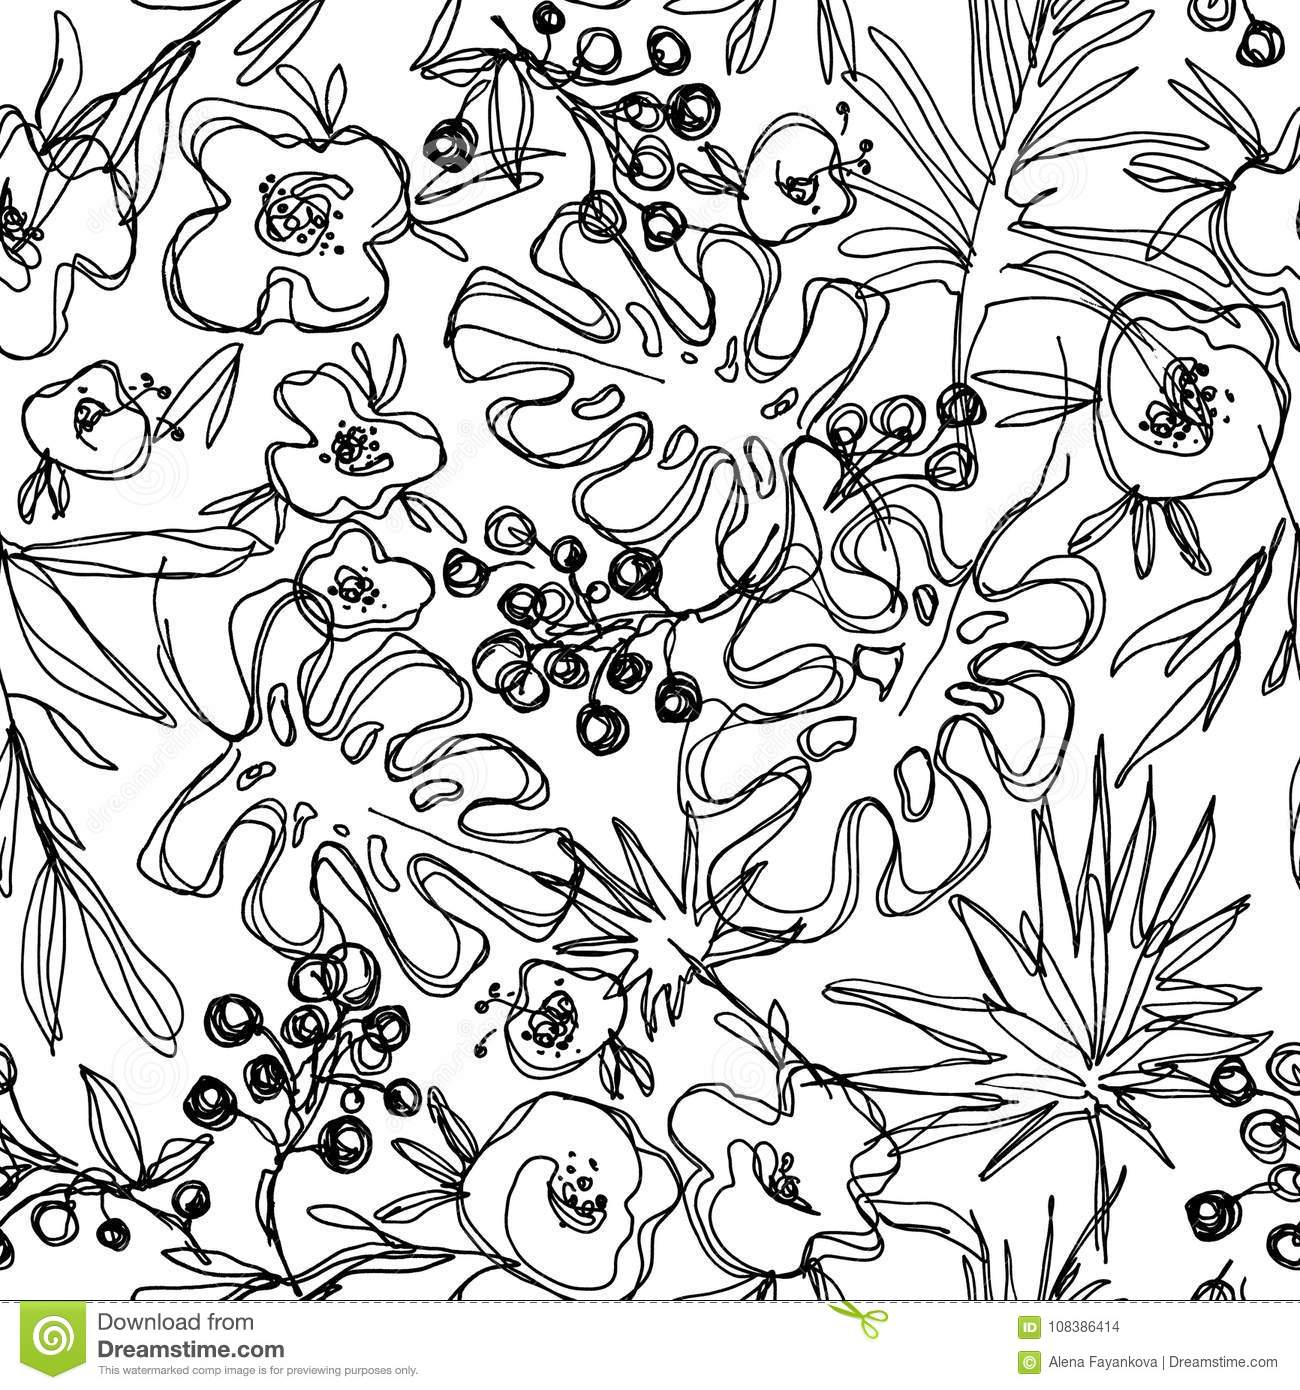 Outlines Jungle Flowers Seamless Pattern Hand Drawn